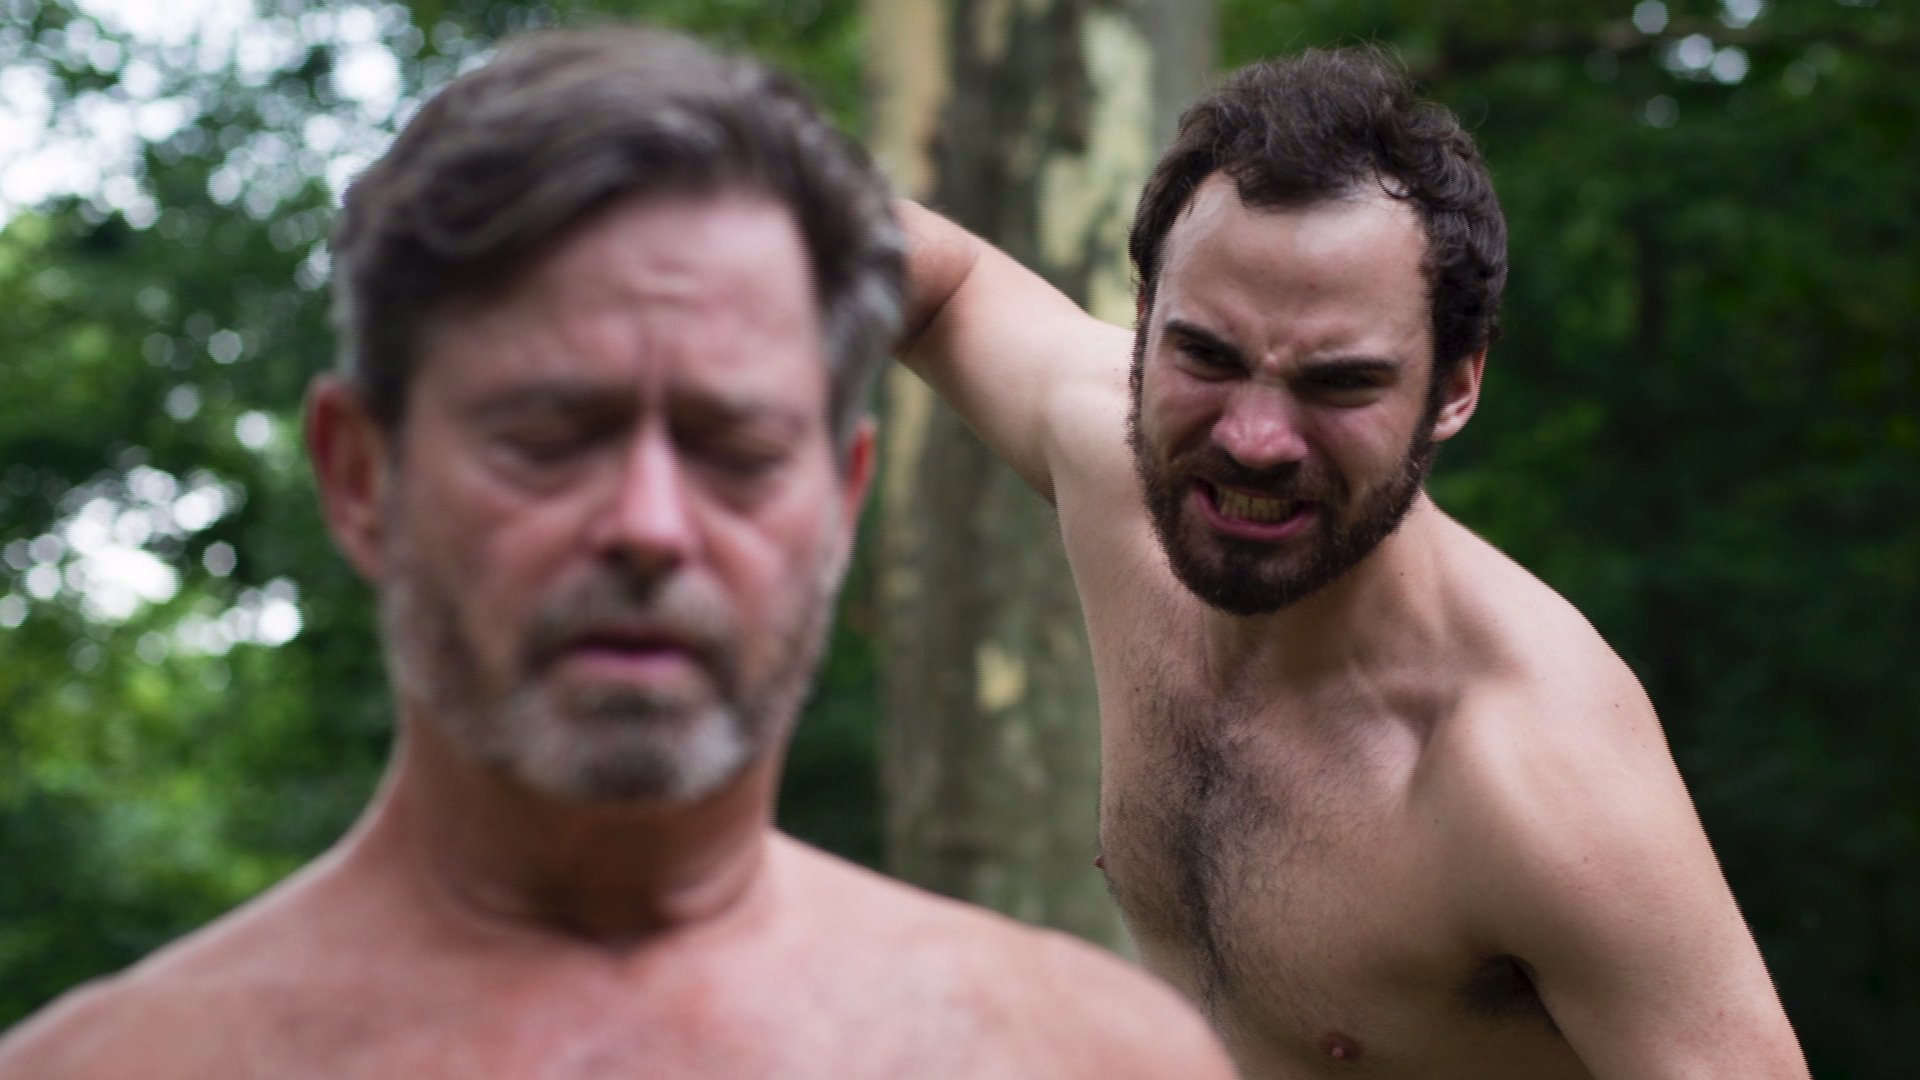 Andy Adler Nude all-male nude production of hamlet in prospect park aims to